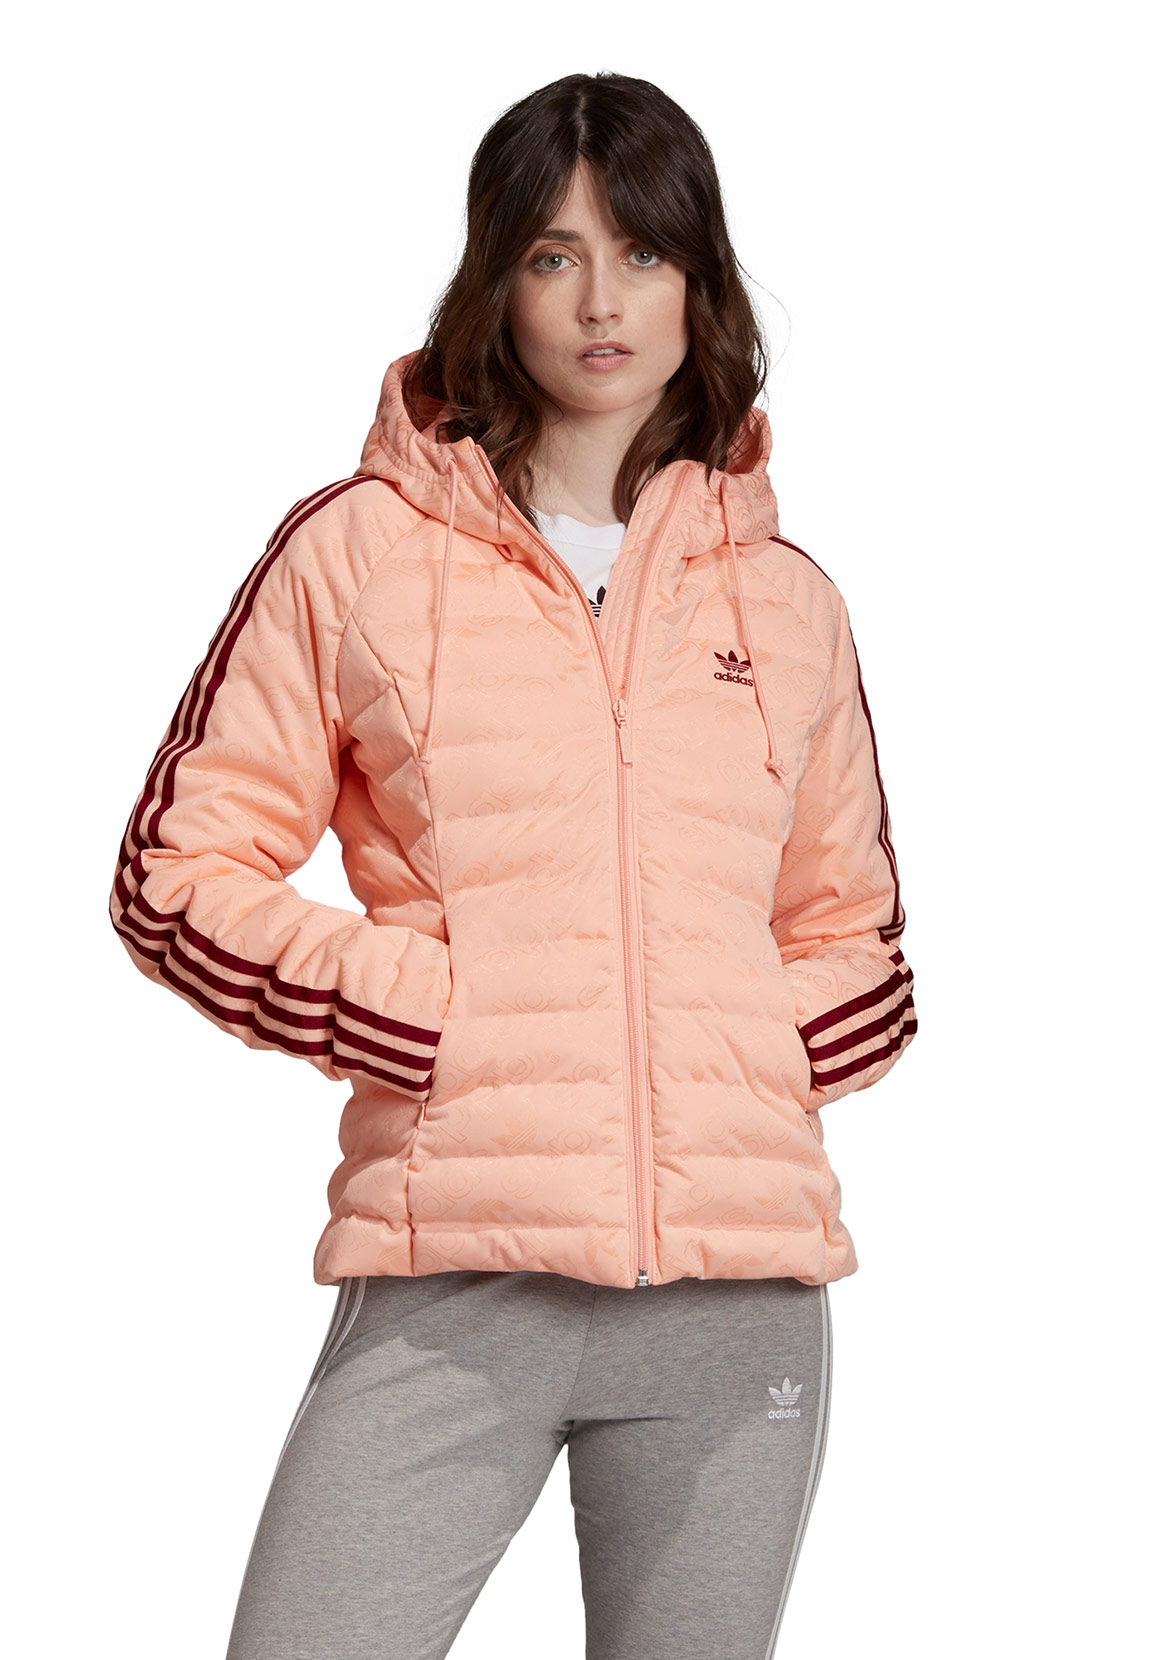 Adidas Originals Jacke Damen SLIM JACkET ED4739 Rosa